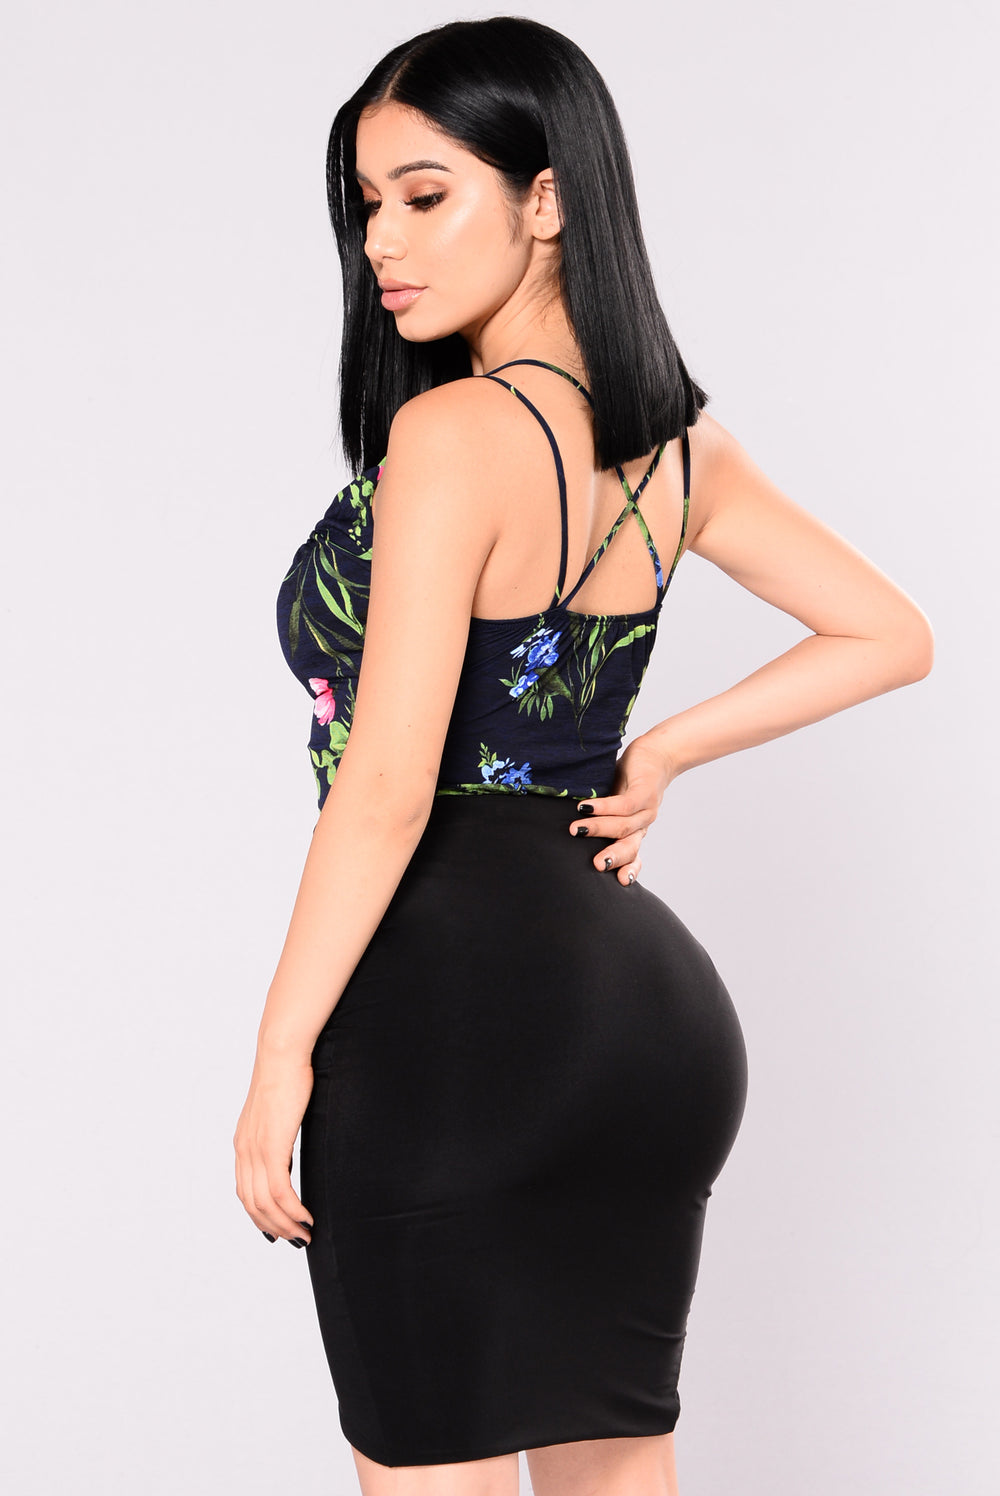 Tropic Wave Bodysuit - Black